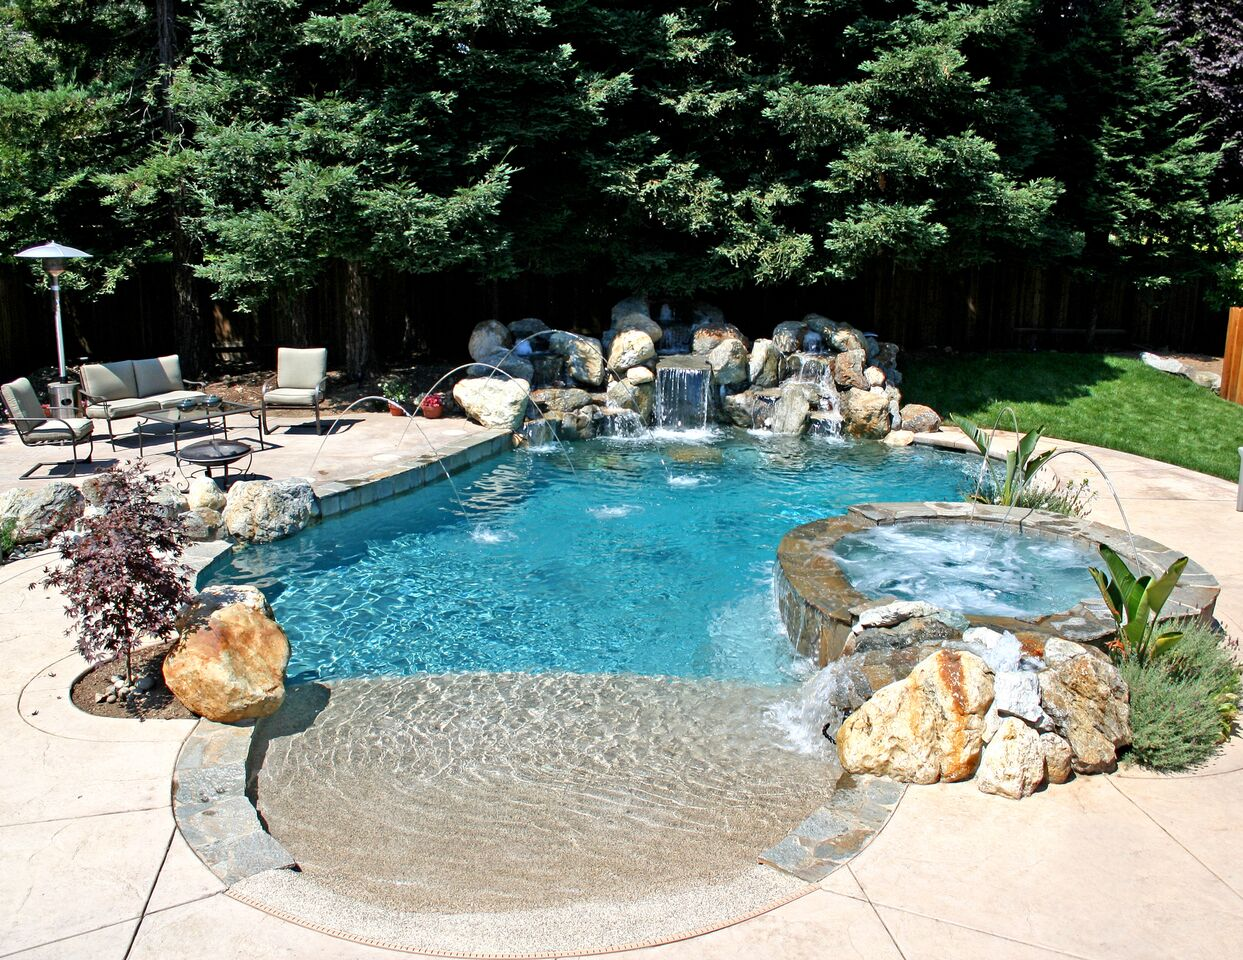 How to Deal With Nutgrass Problem around Swimming Pools